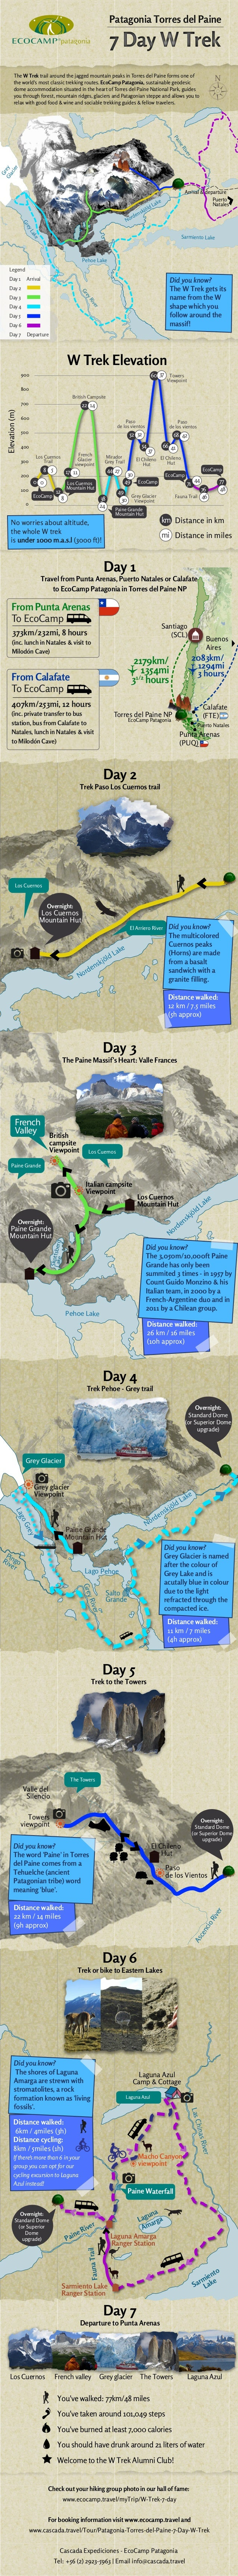 7 Day W-Trek Day by Day Infographic